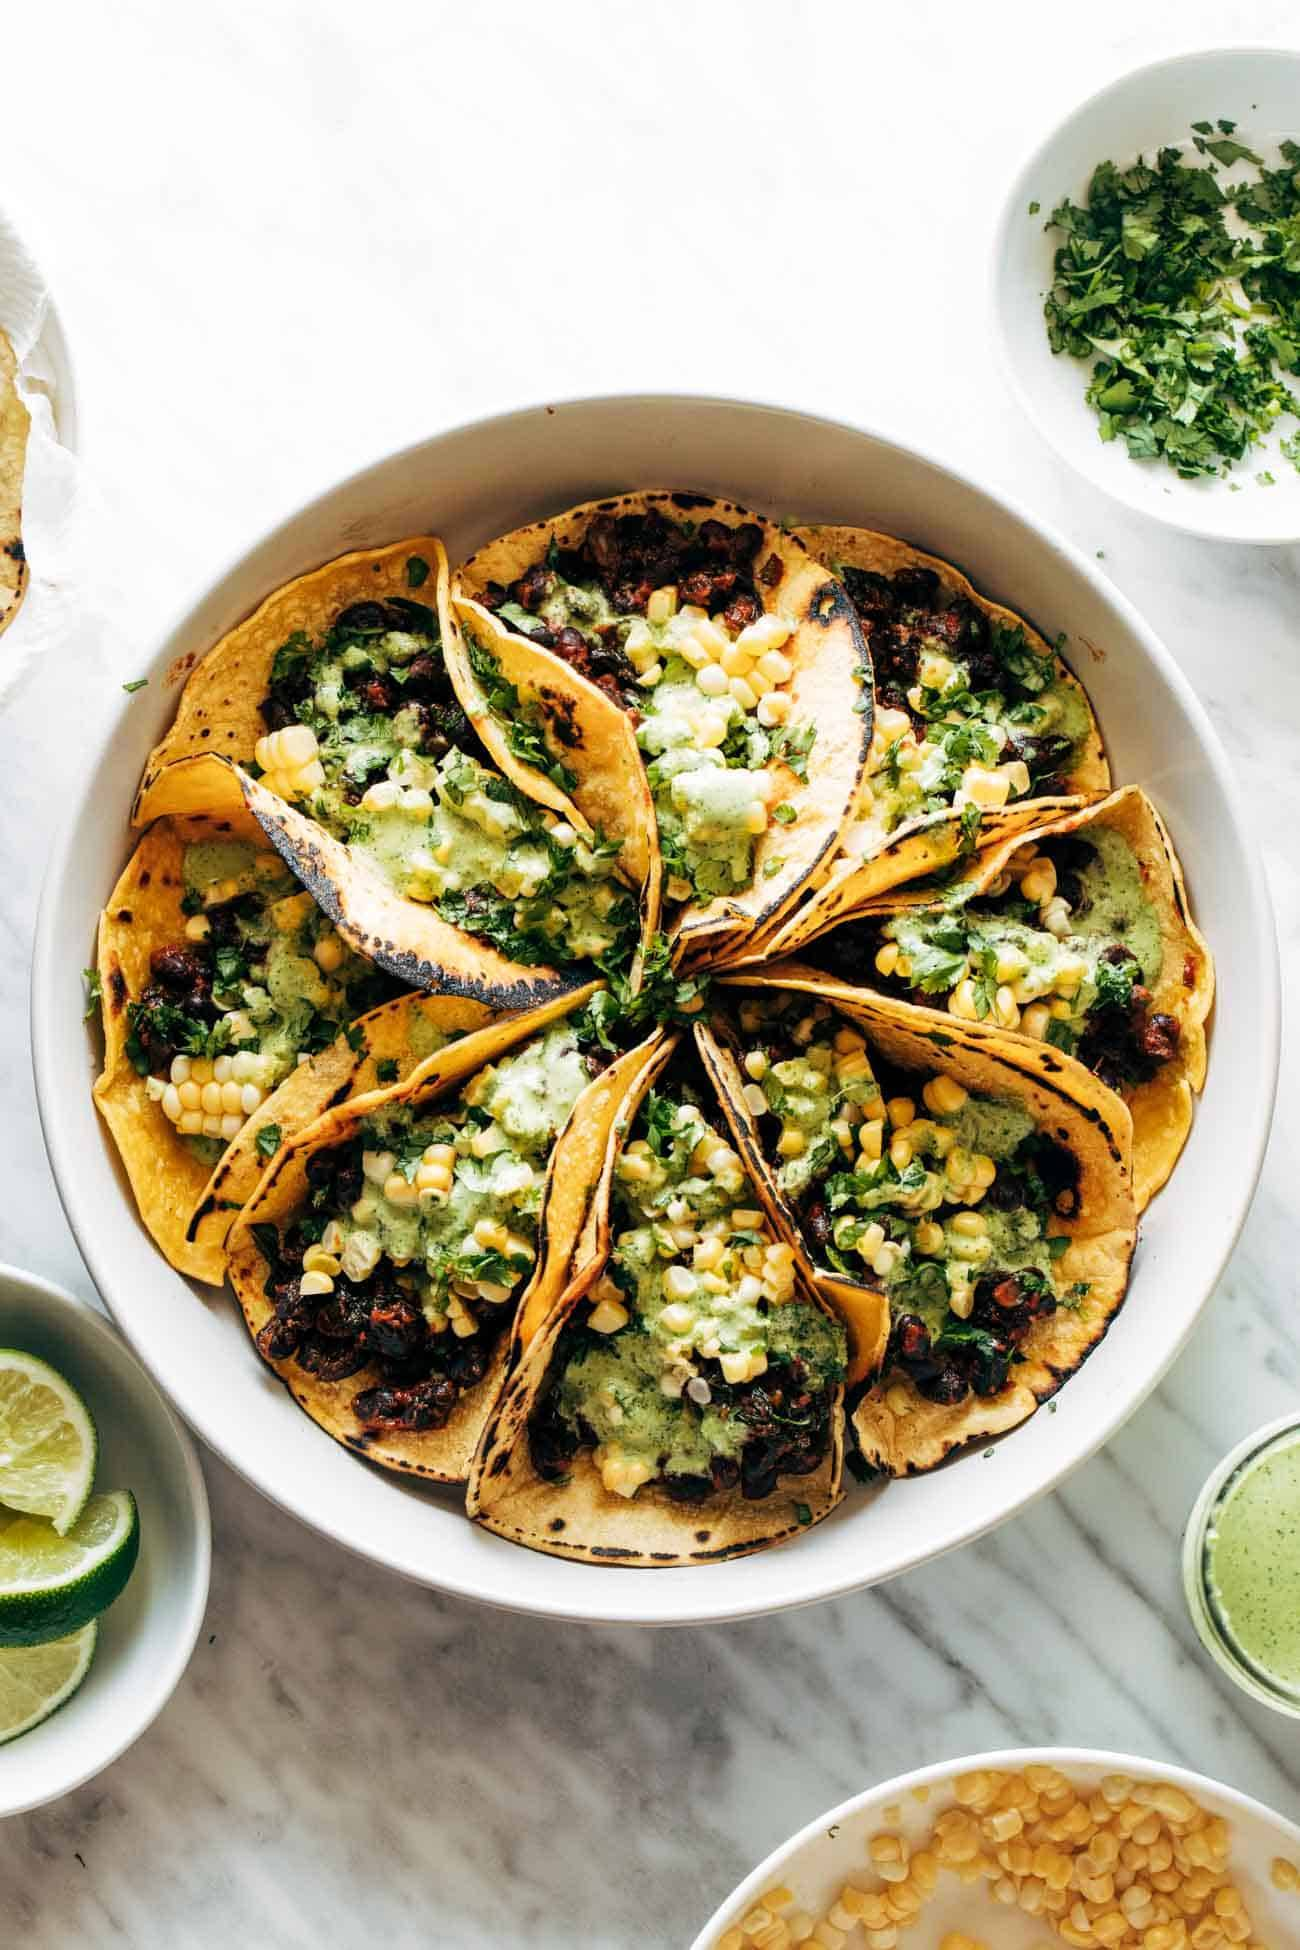 Smoky beans and greens tacos in a circular pattern on a plate and topped with Aji Verde sauce and corn.